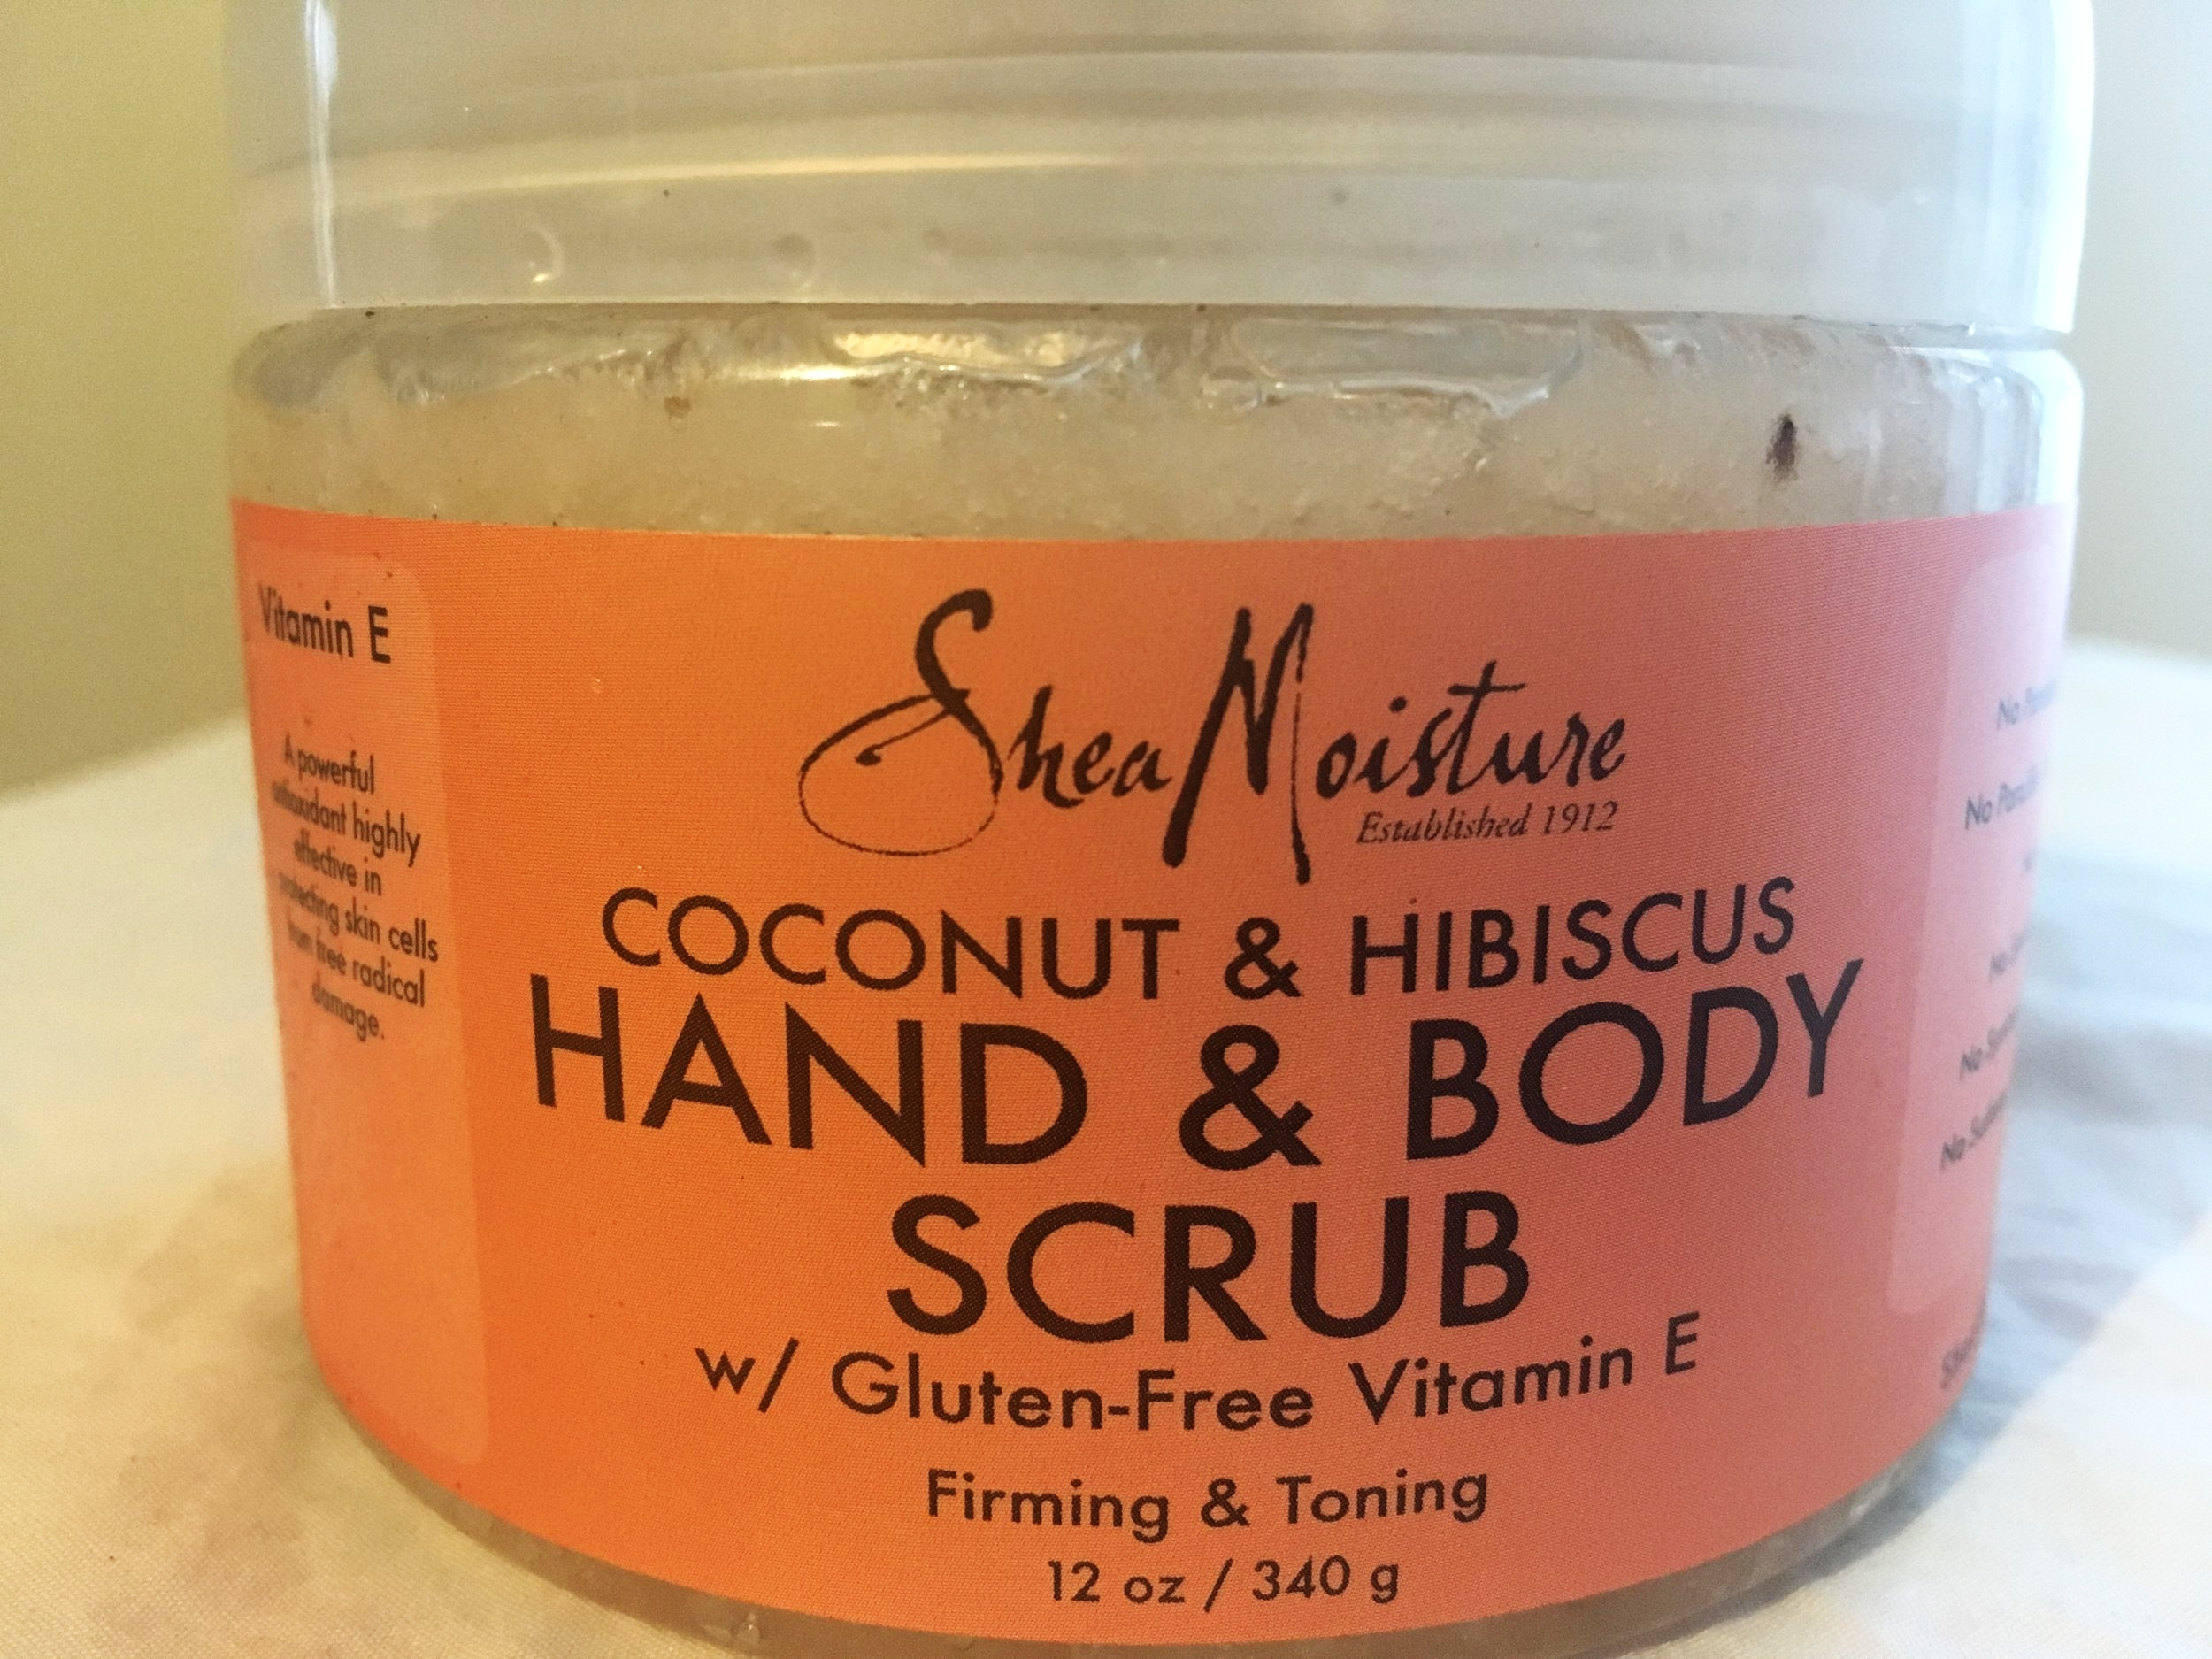 SheaMoisture Coconut & Hibiscus Hand & Body Scrub - Shea Moisture's affordable sugar scrubs (there are other versions) exfoliate, restore moisture, improve skins firmness, and can brighten dull skin. I love rotating these into my skin cleansing routine as they do NOT contain any parabens, phthalates, propylene glycol, mineral oil, sulfates & is cruelty free with organic ingredients.